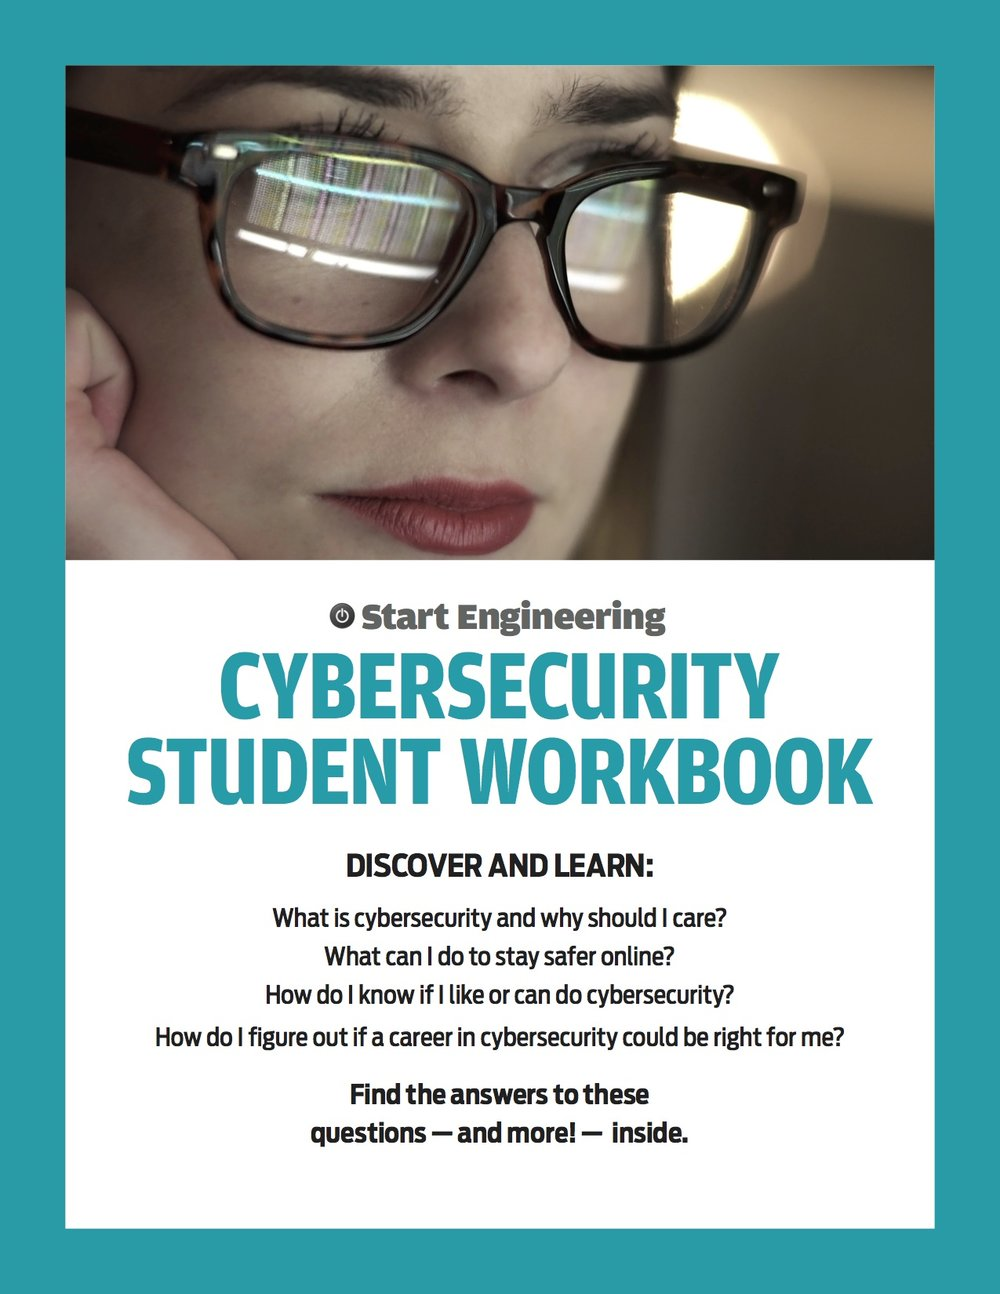 Cybersecurity Student Workbook cover.jpg